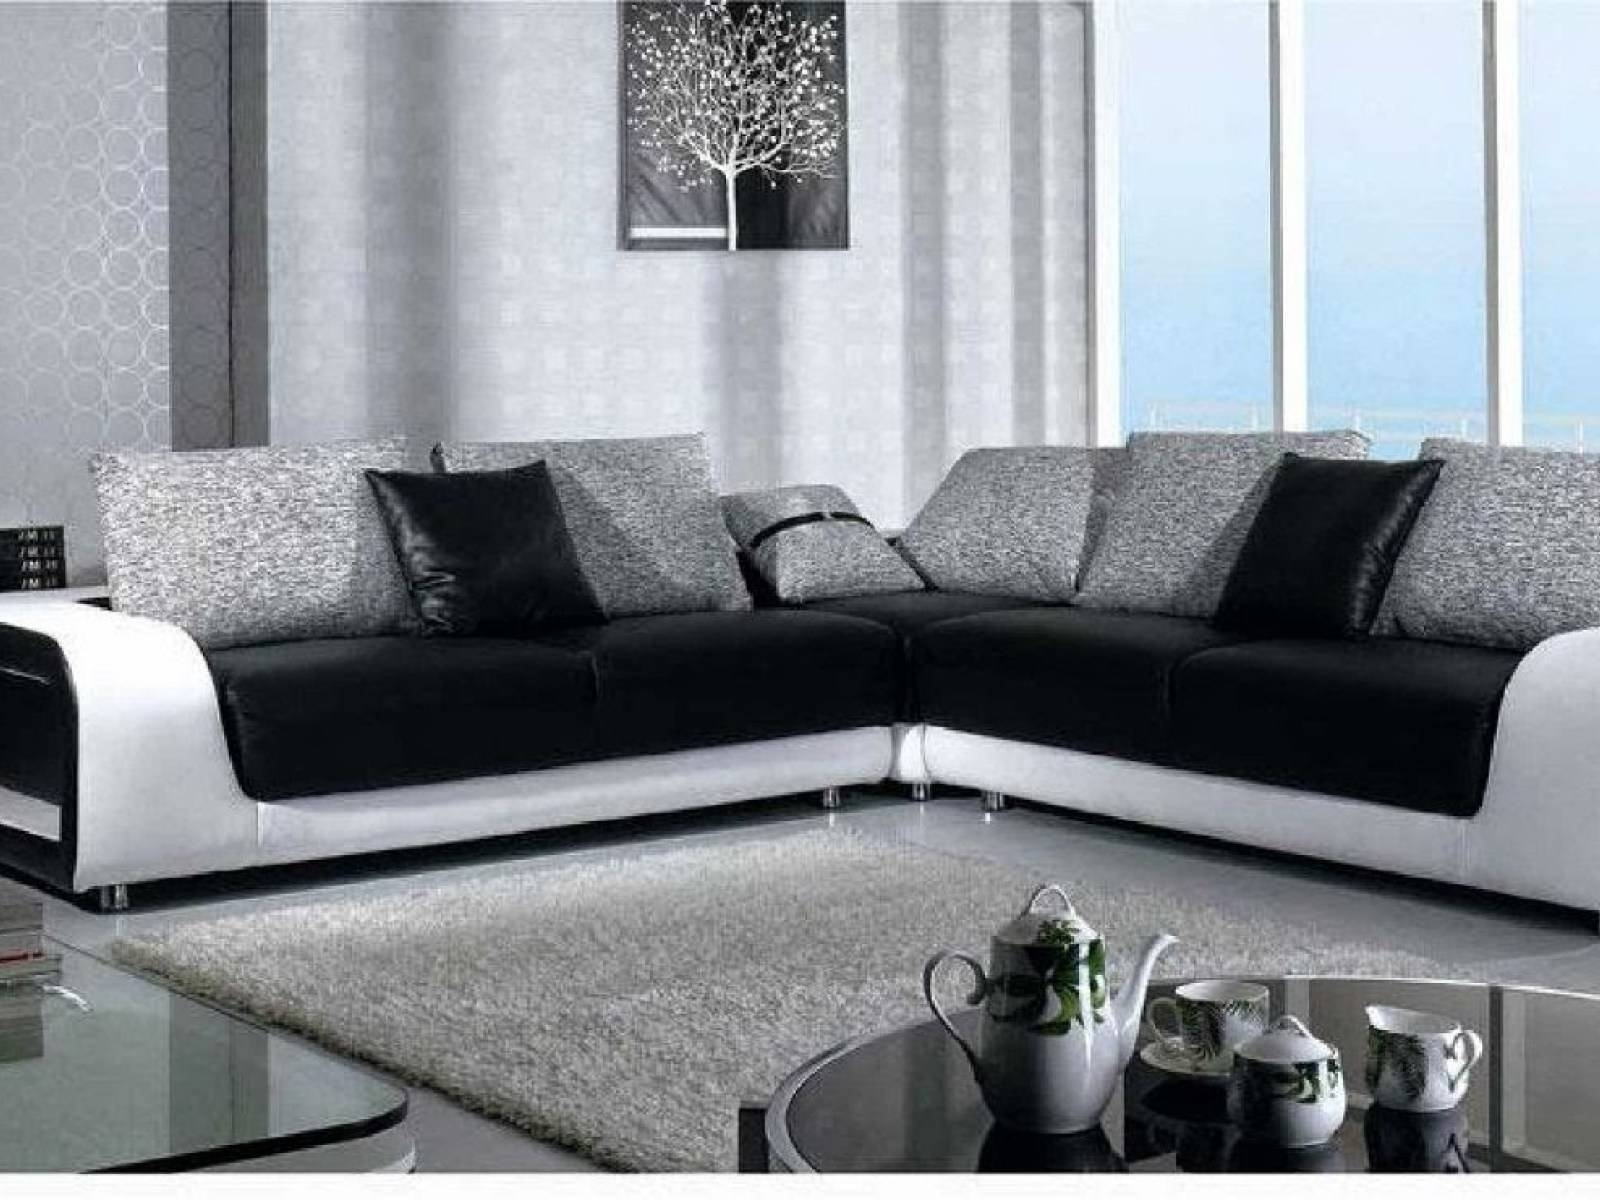 ▻ Sofa : 14 Black Couch Black And White Couch With 89 Wonderful throughout Black And White Sofas (Image 27 of 30)